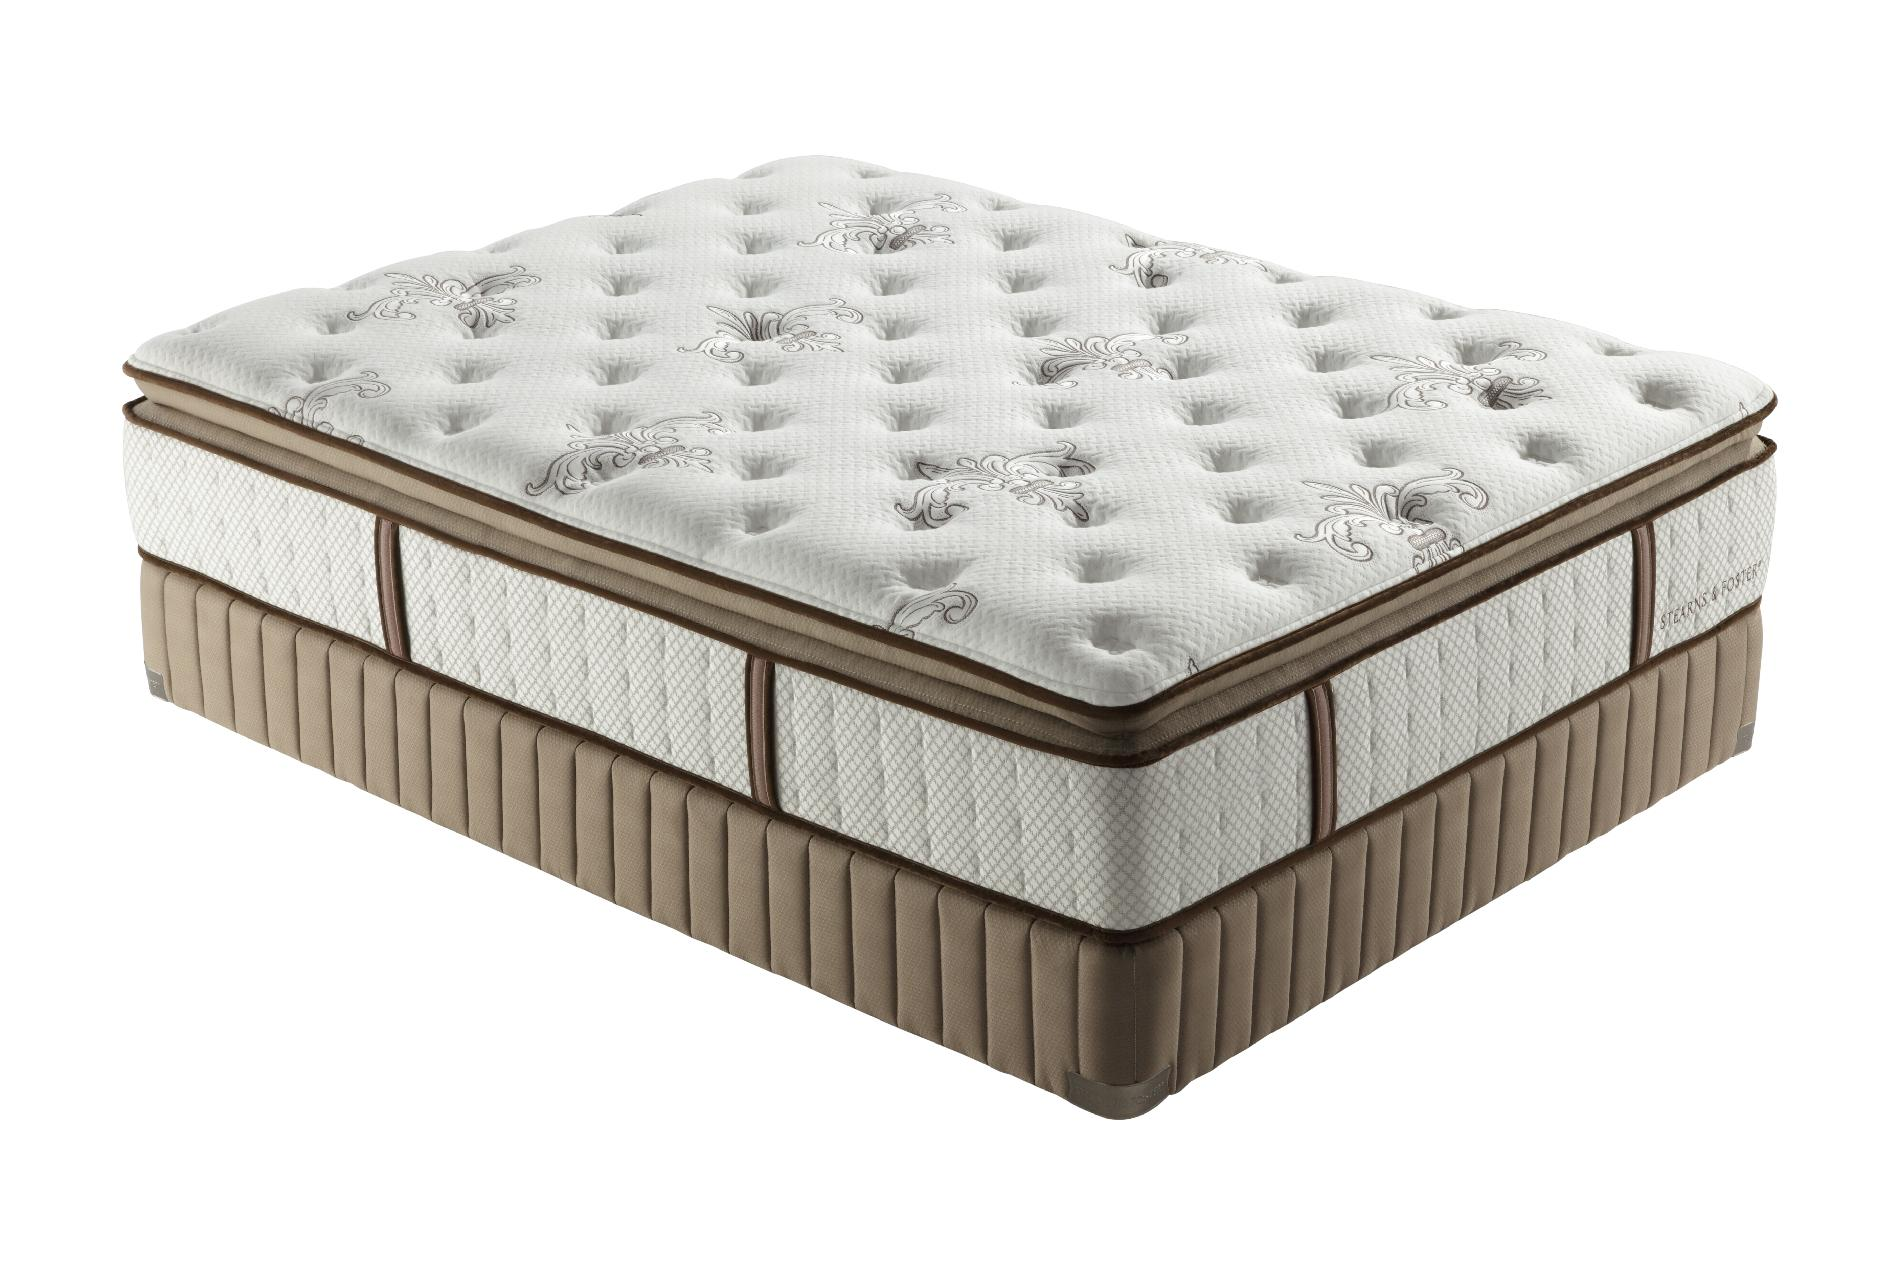 Stearns & Foster Estate Chasity II Plush Euro Pillowtop Queen Mattress Only